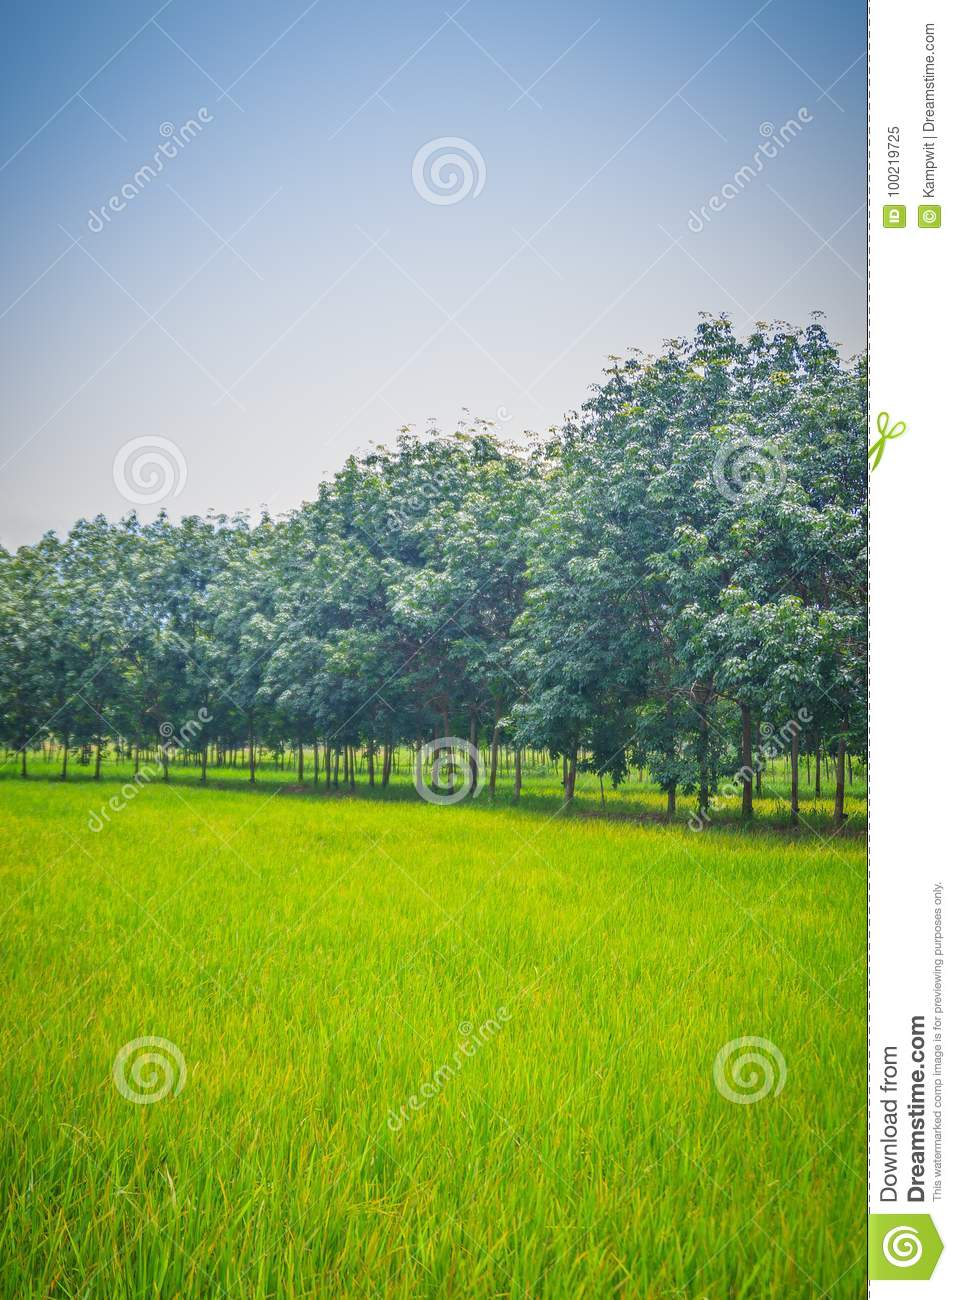 Mixed Farming By Planting Rubber Trees In Rice Fields Is